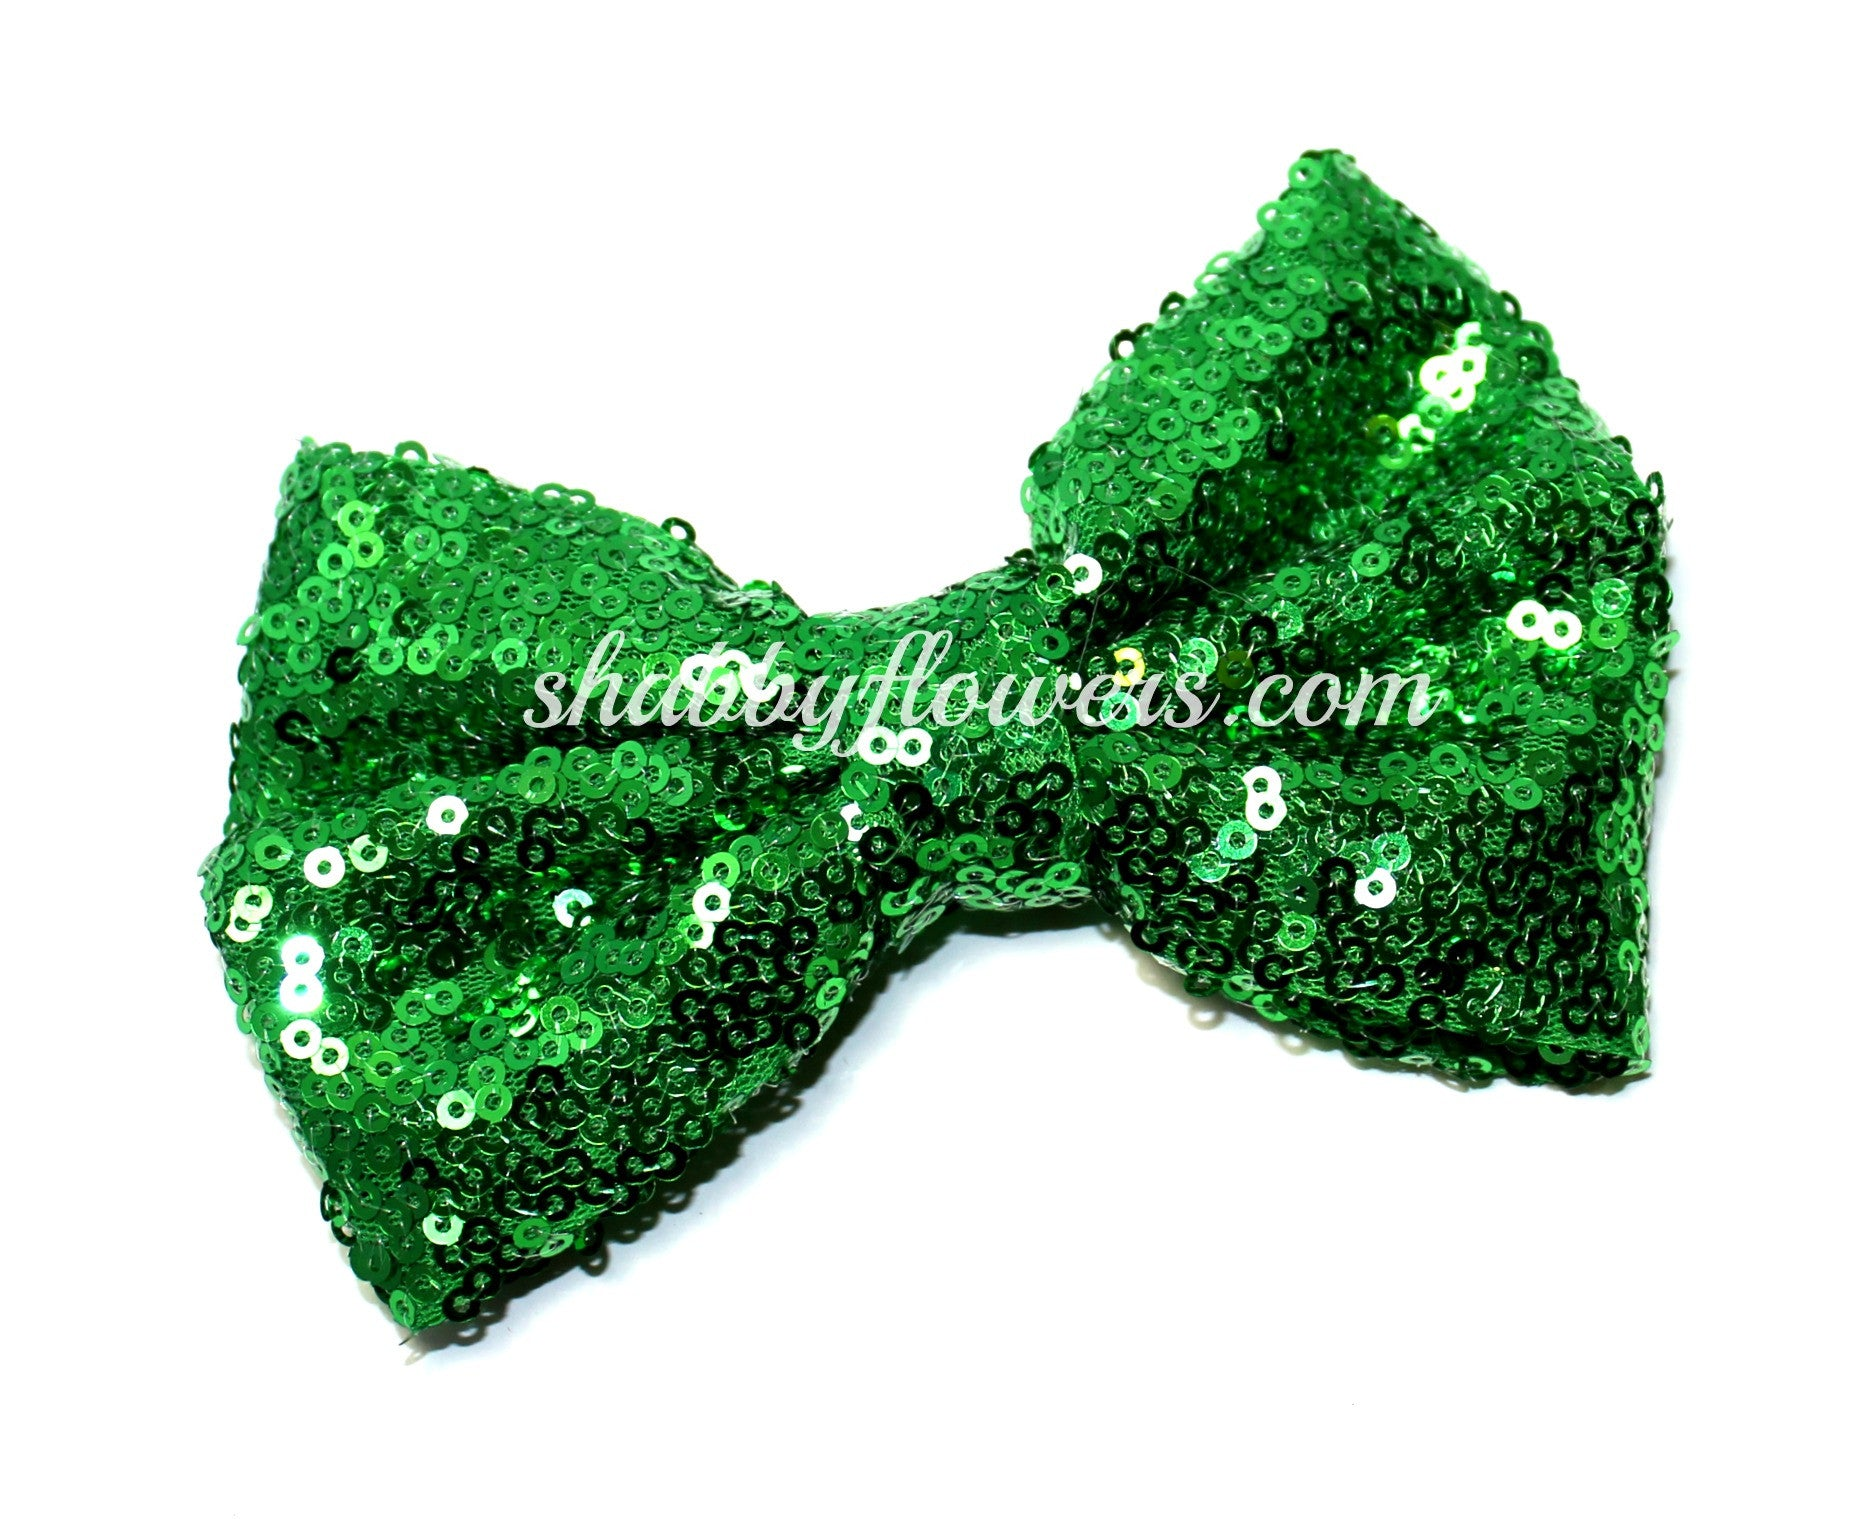 Large Sequin Bow - Green - shabbyflowers.com